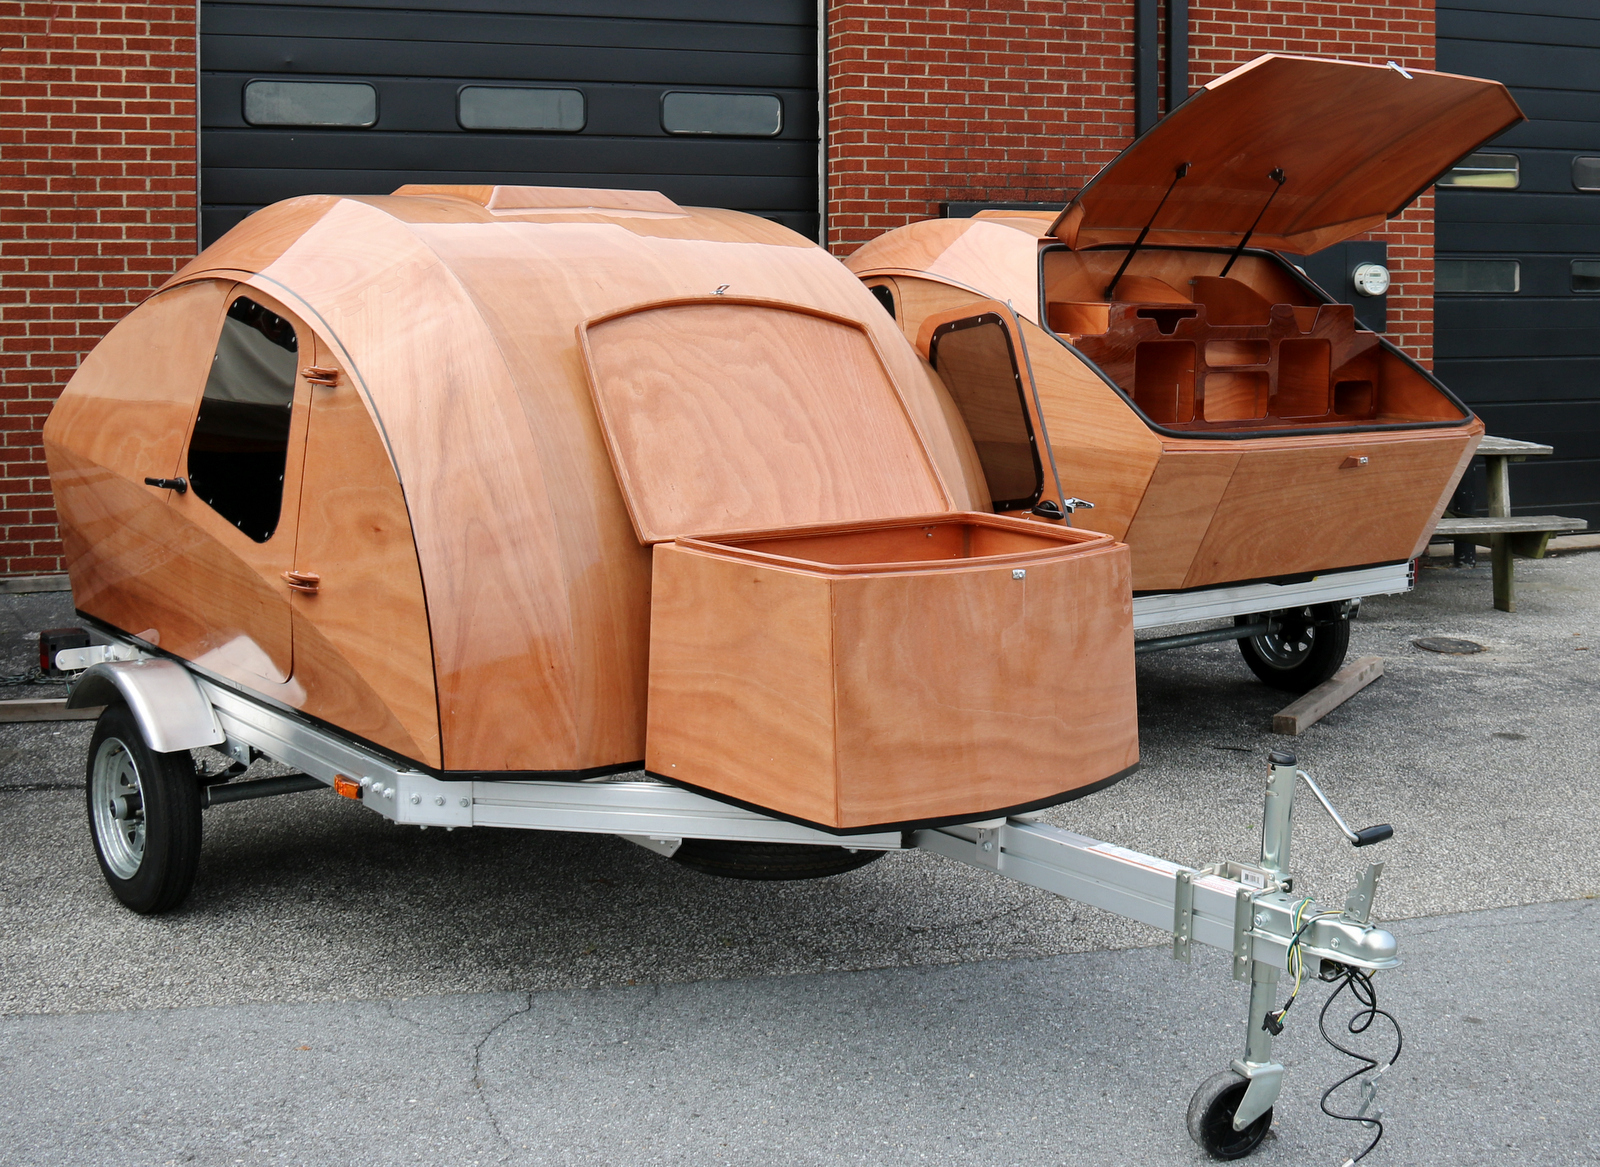 Completed Clc Teardrop Camper For Sale